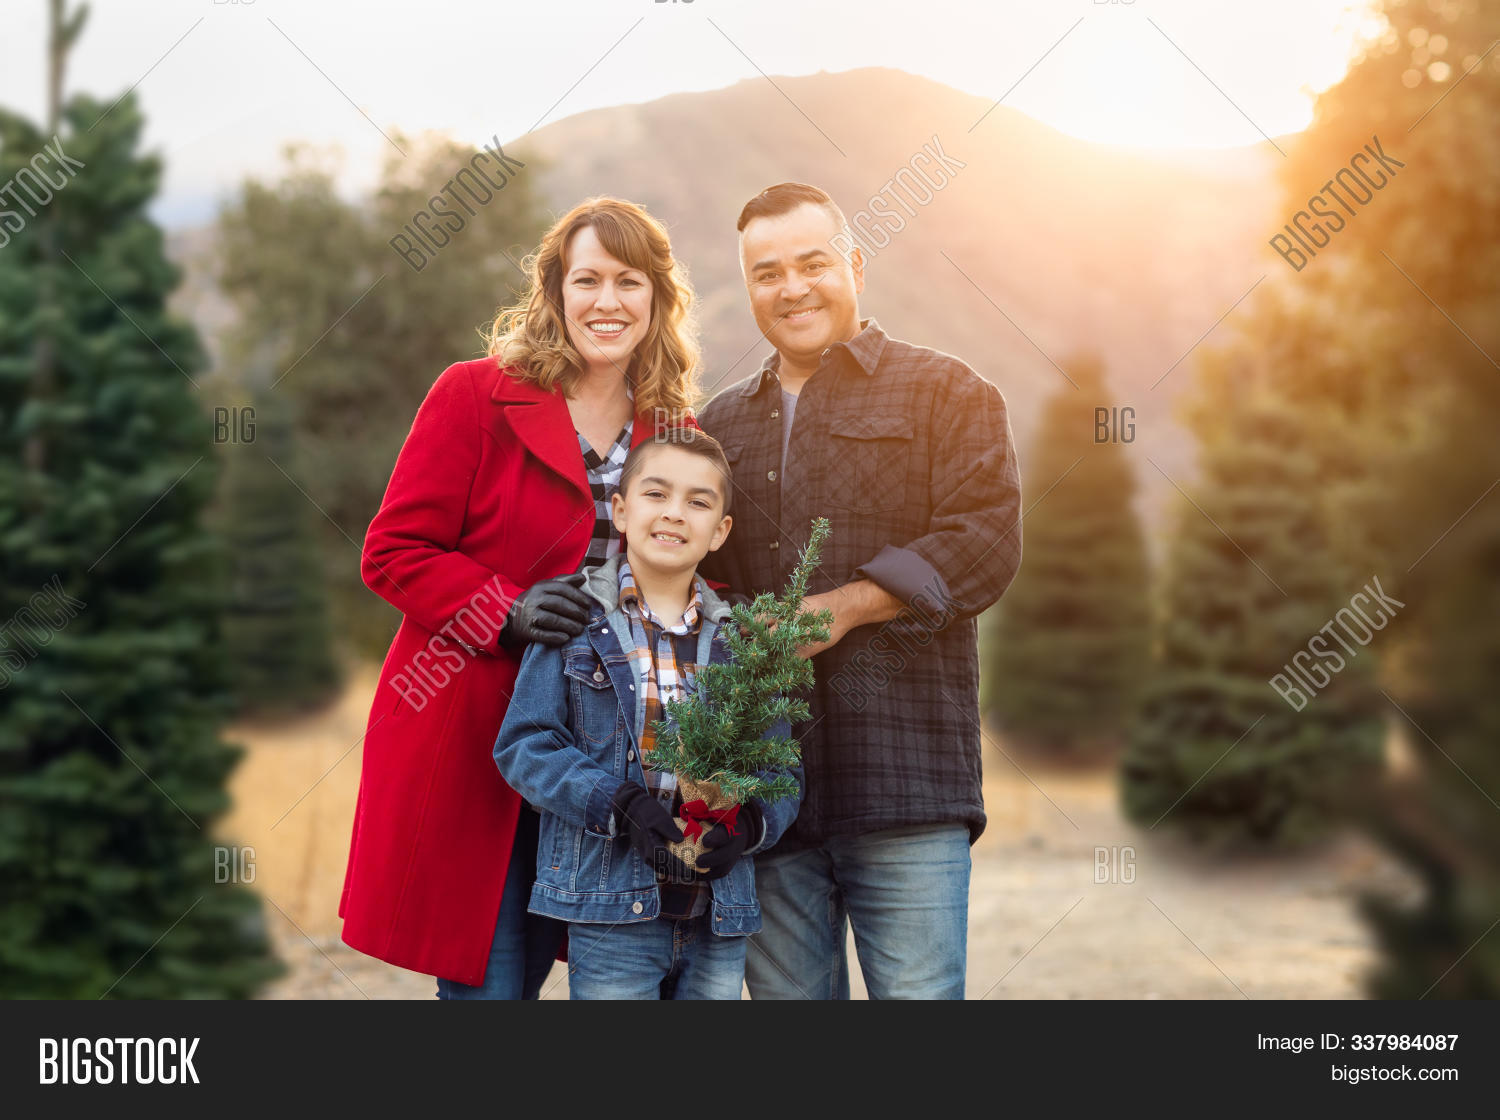 Mixed Race Family Image Photo Free Trial Bigstock